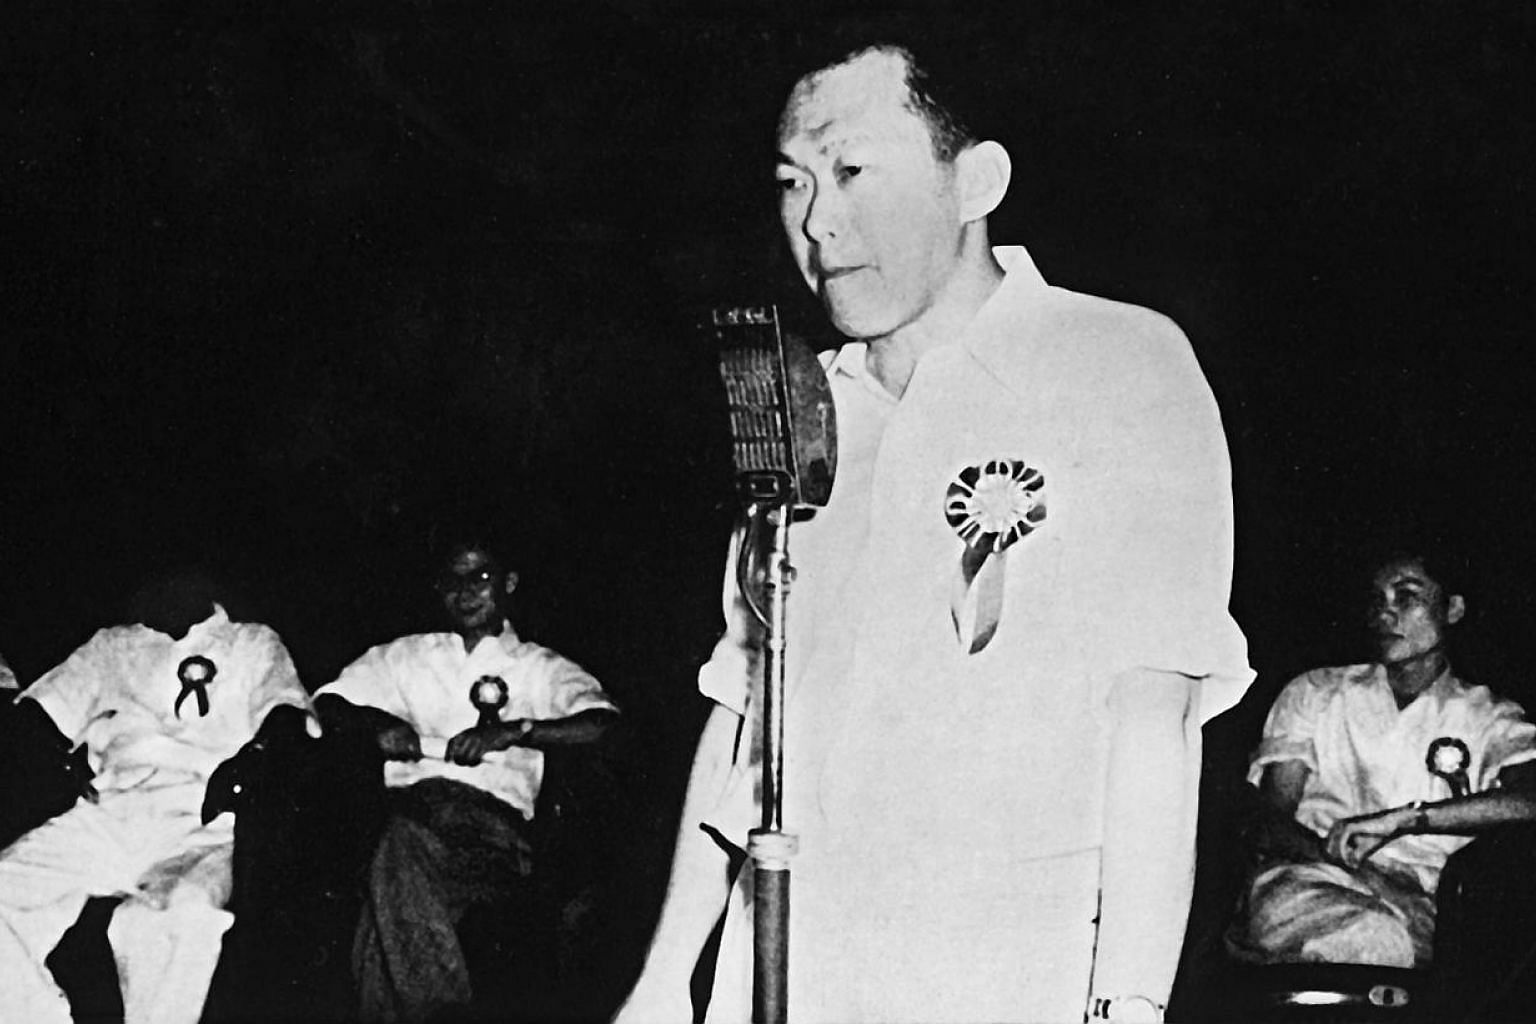 Mr Lee Kuan Yew addresses the inaugural meeting of the PAP held at the Victoria Memorial Hall on Nov 21, 1954. He said that the party would strive to end colonialism by establishing an independent national state of Malaya, consisting of the Federatio